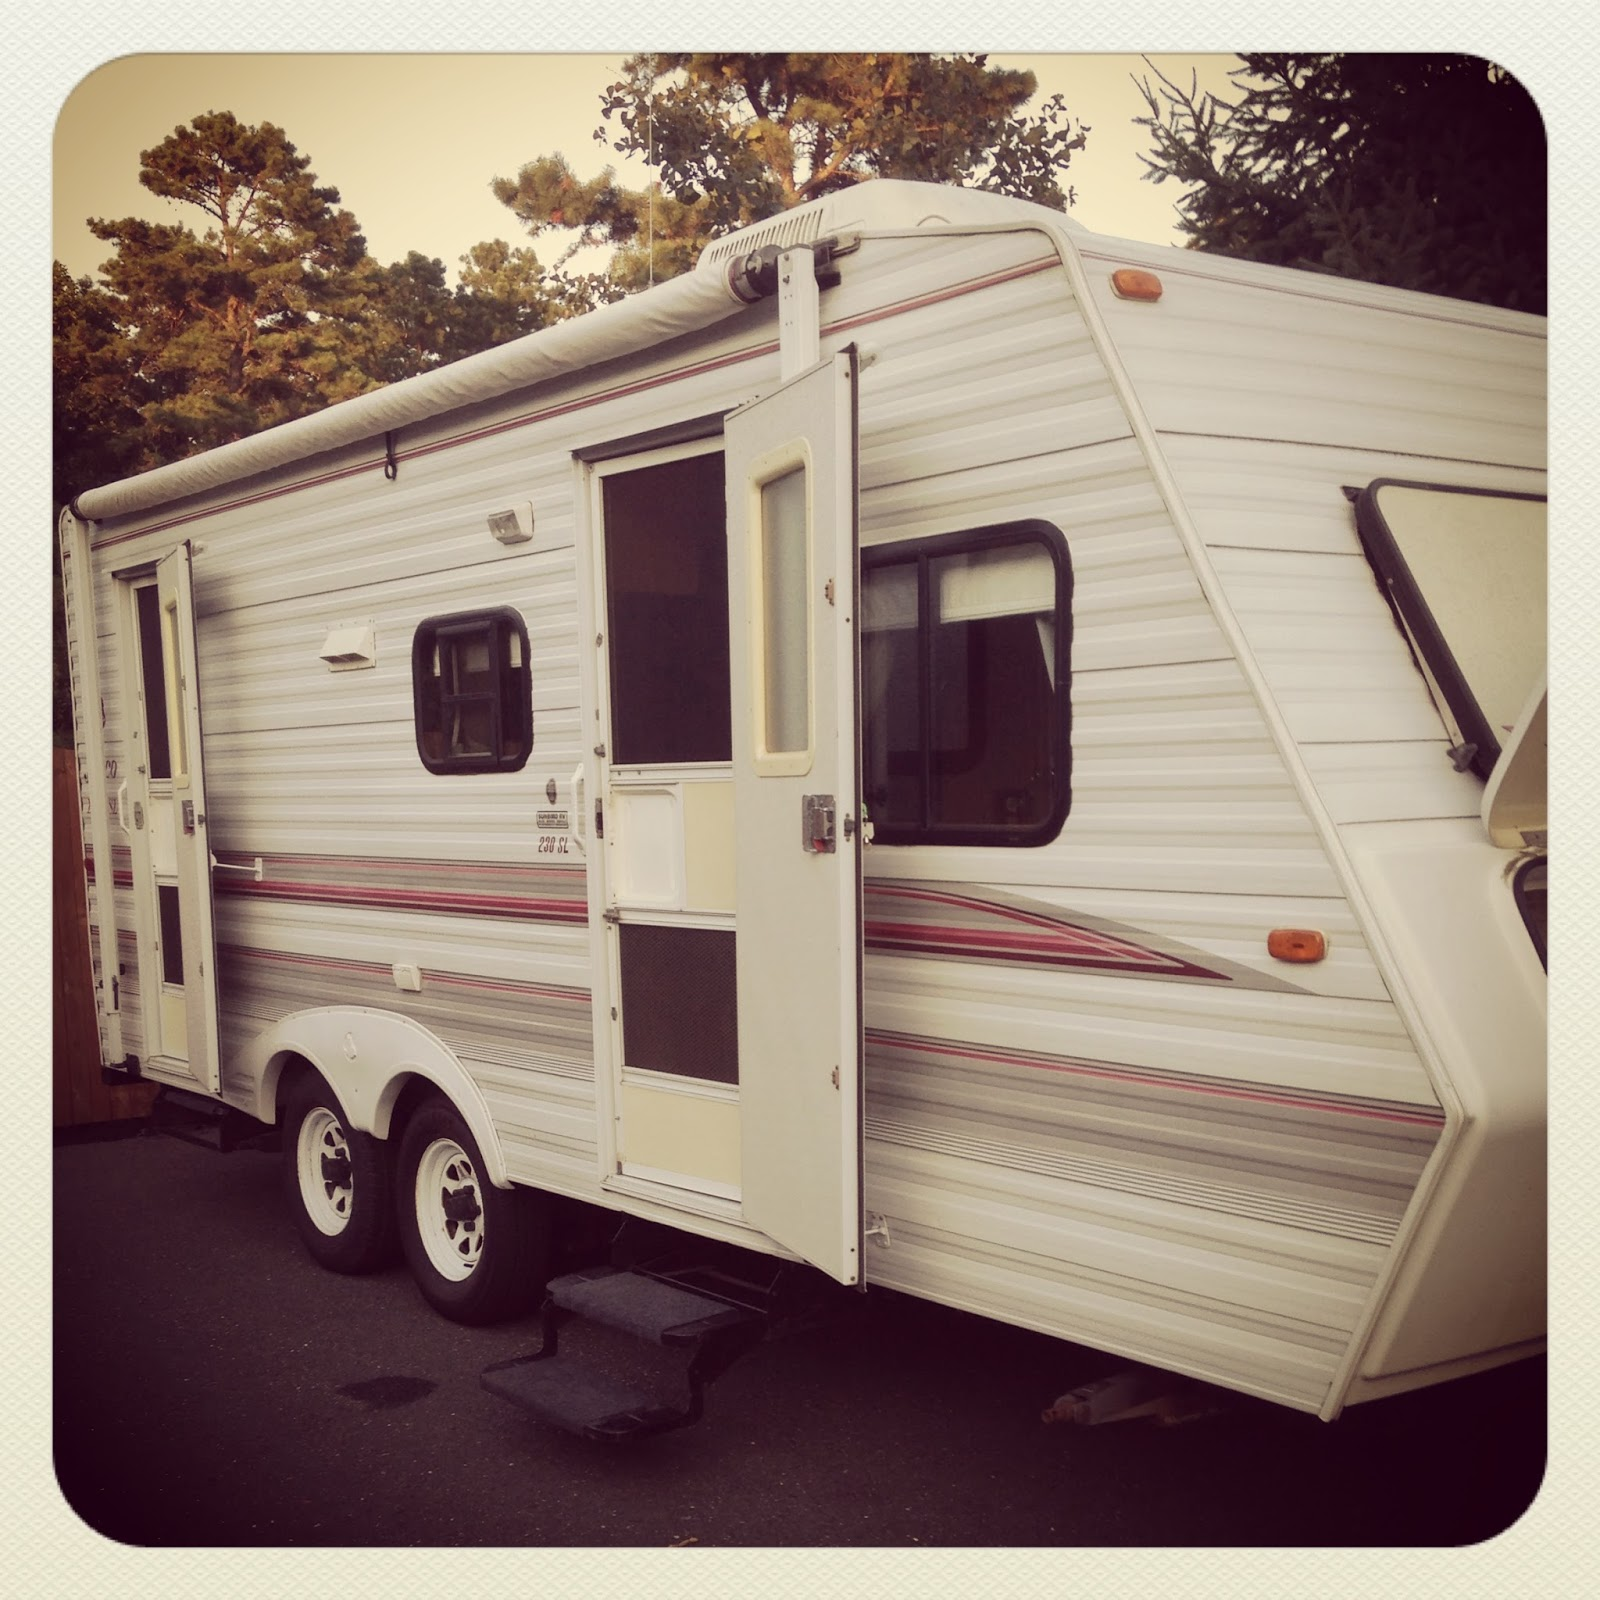 Jayco Travel Trailers: Pine Tree Home: Camper Redo: We Bought A Camper